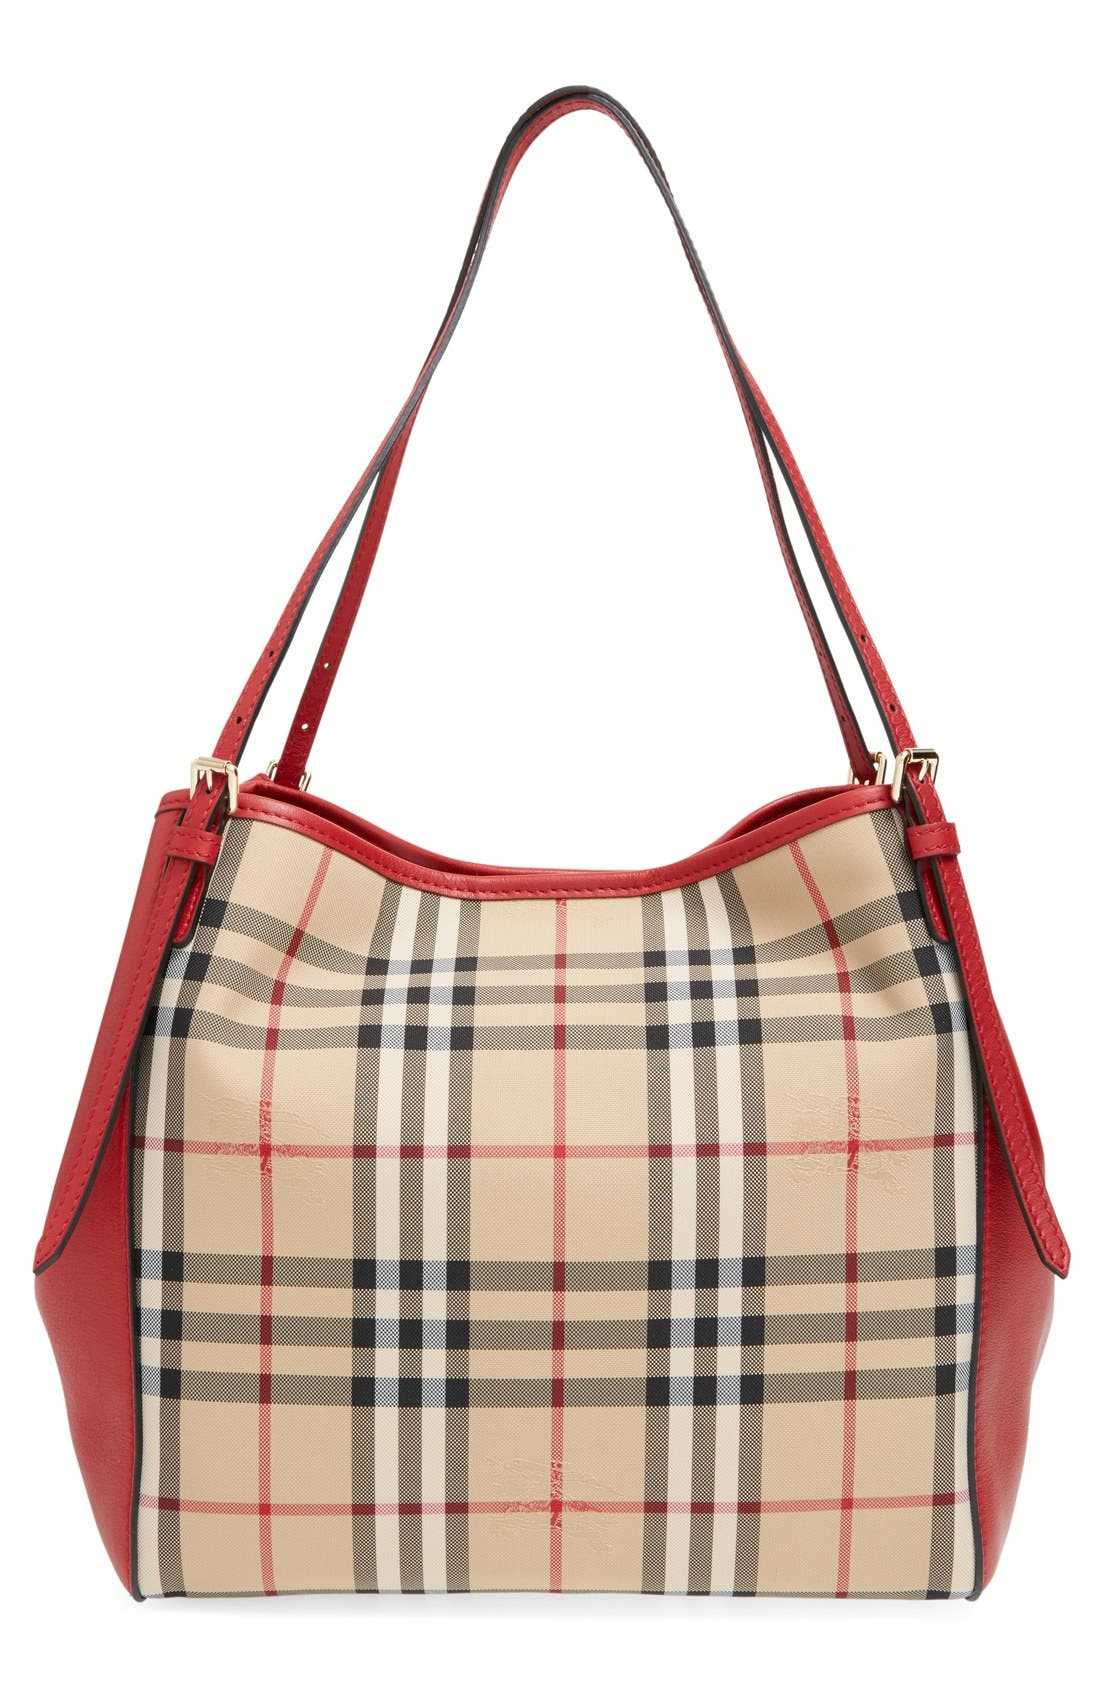 BURBERRY,                             'Horseferry Check - Small Canterbury' Tote,                             Alternate thumbnail 4, color,                             600